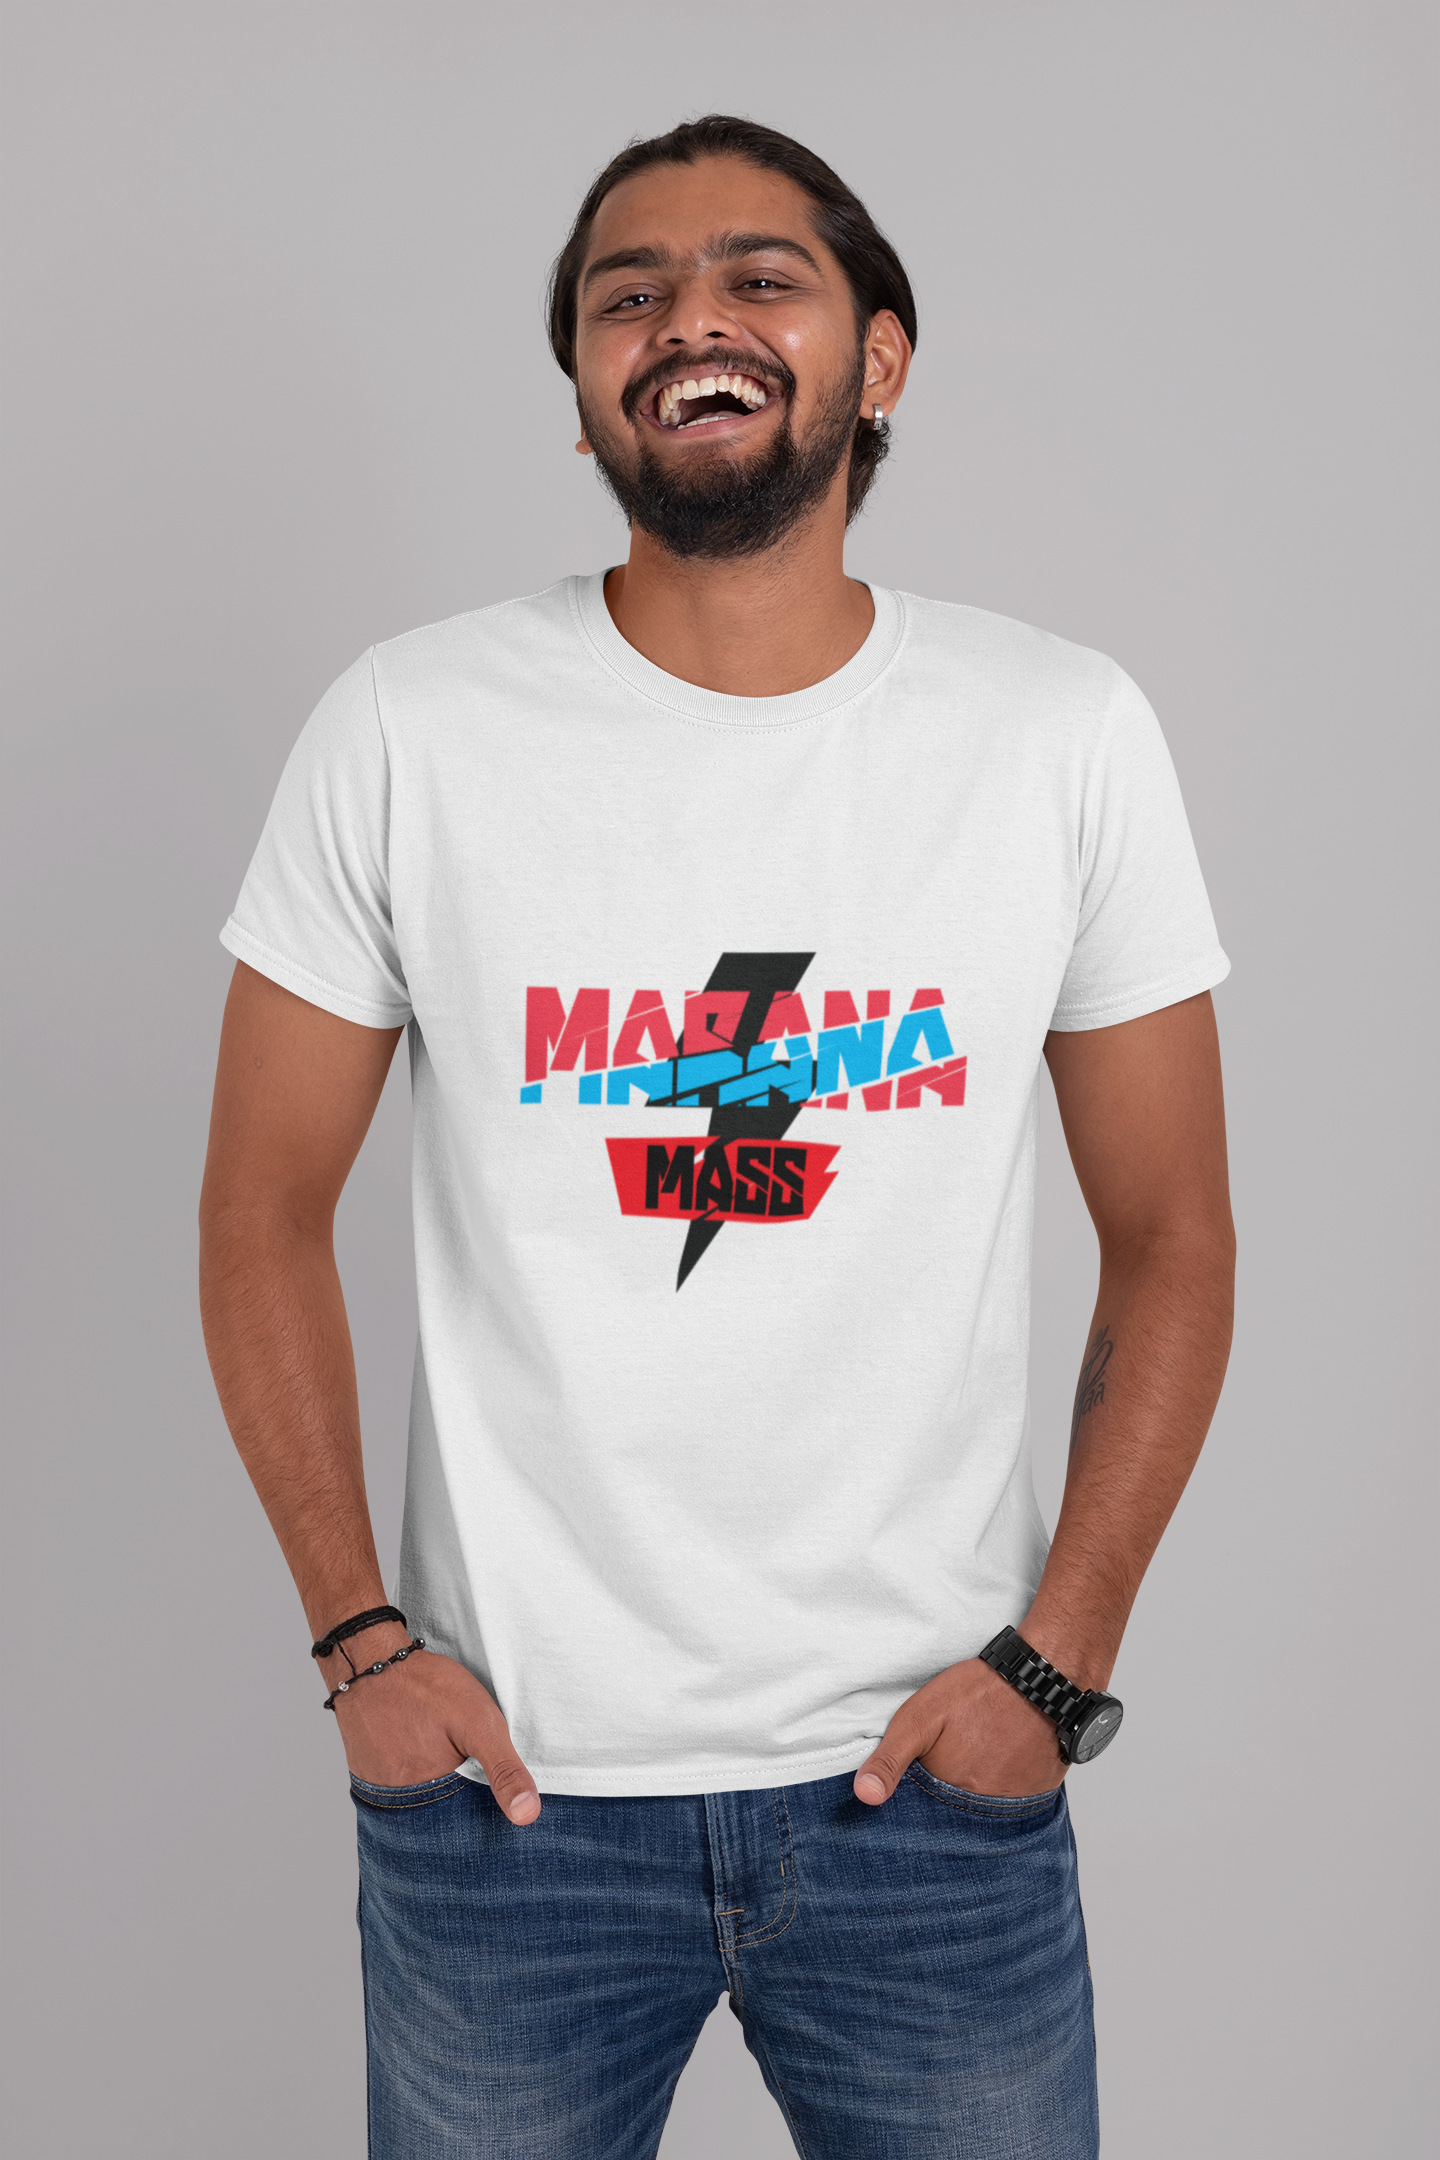 t shirt mockup of a bearded man laughing at a studio 29105